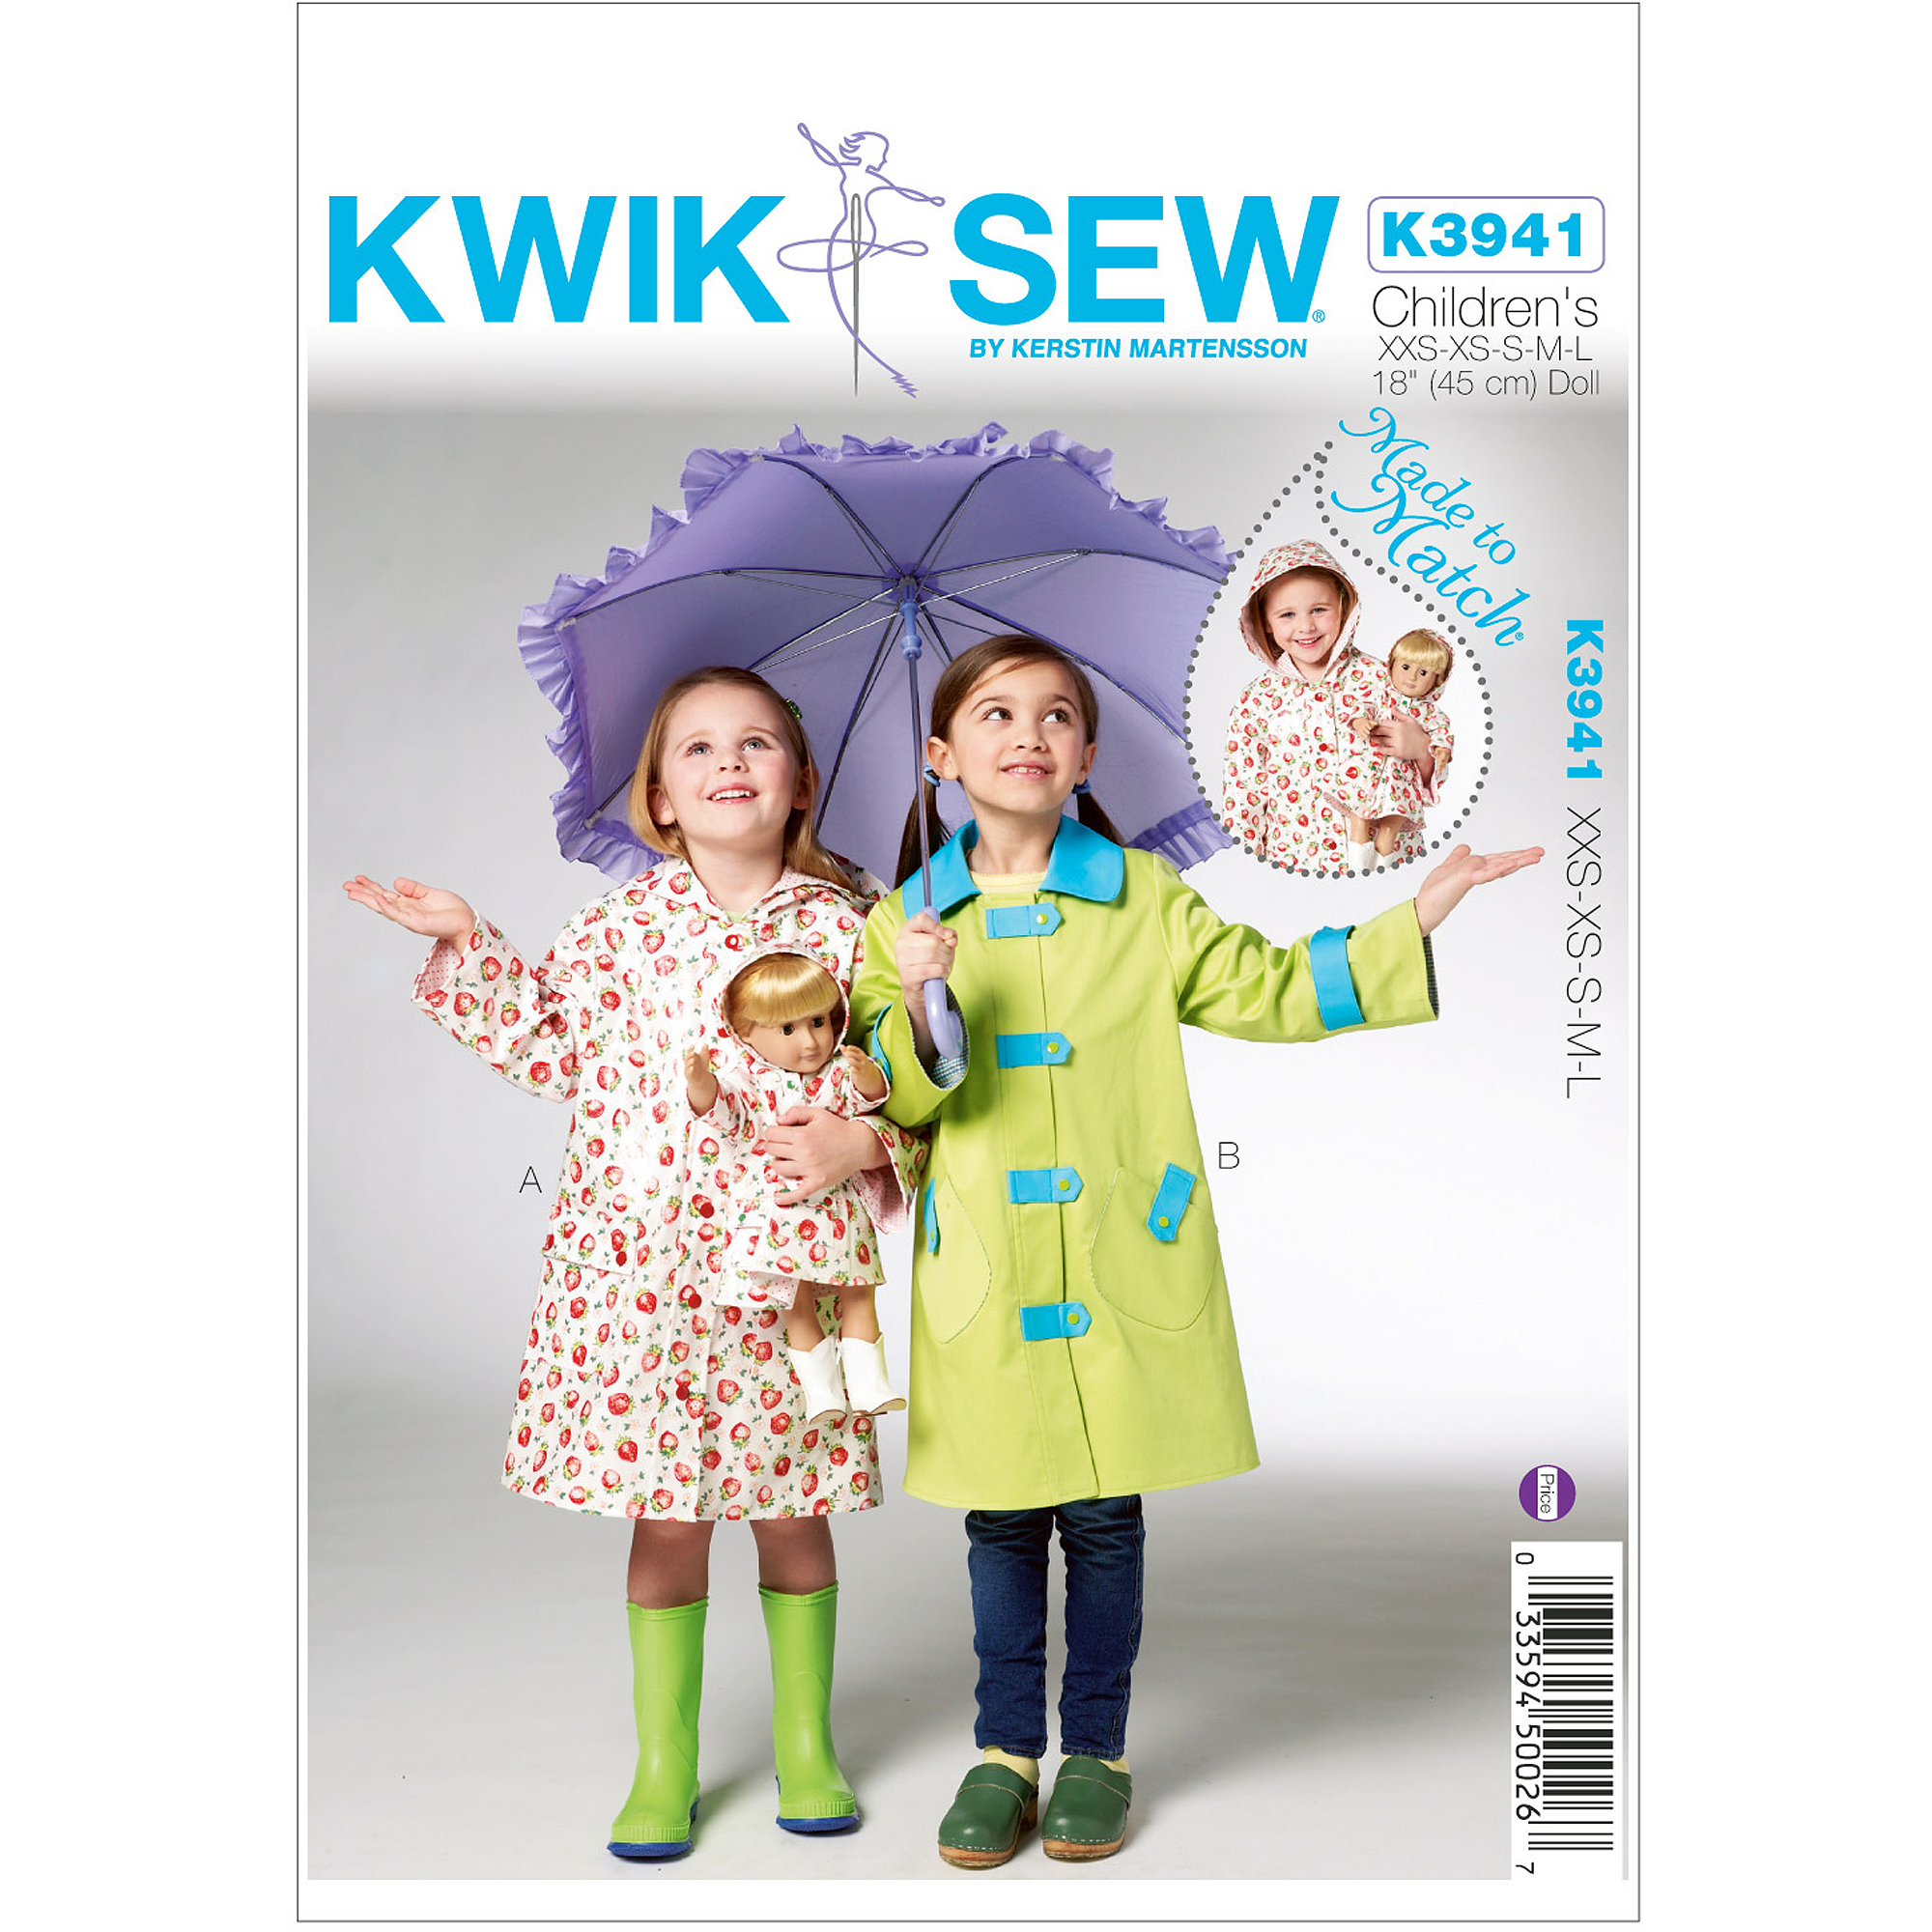 "Kwik Sew Pattern Children's and Doll Raincoats, (XXS, XS, S, M, L) and 18"" Doll"